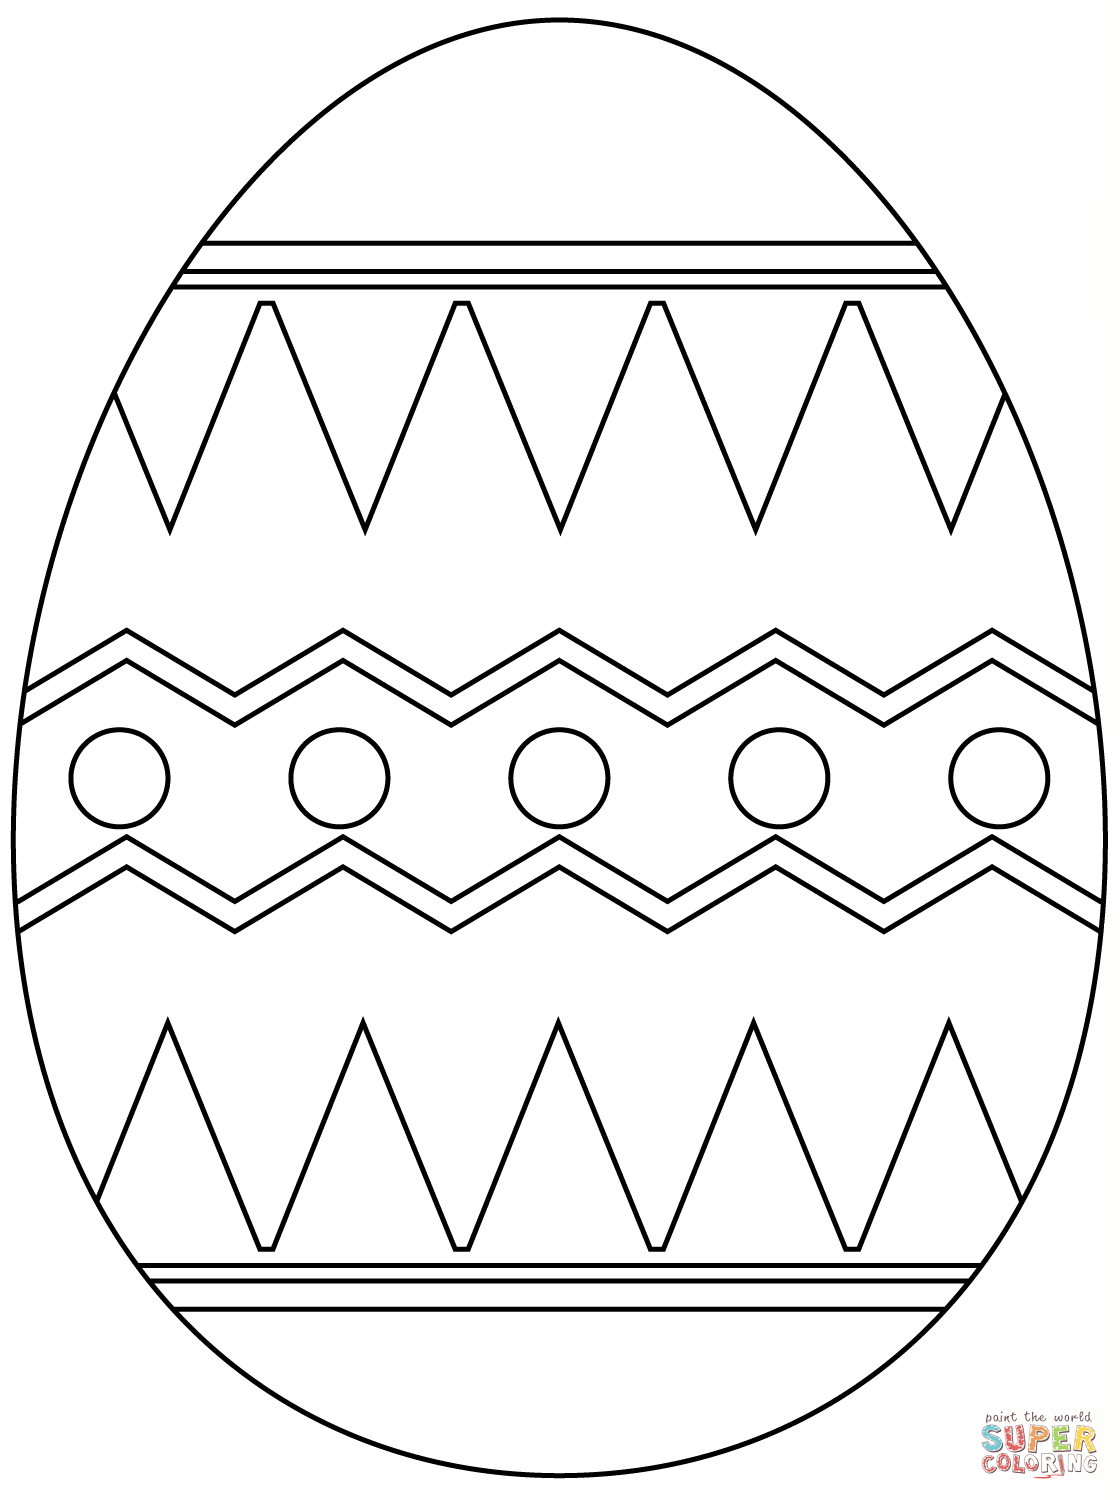 Easter Eggs Coloring Pages   Free Coloring Pages - Free Printable Easter Stuff